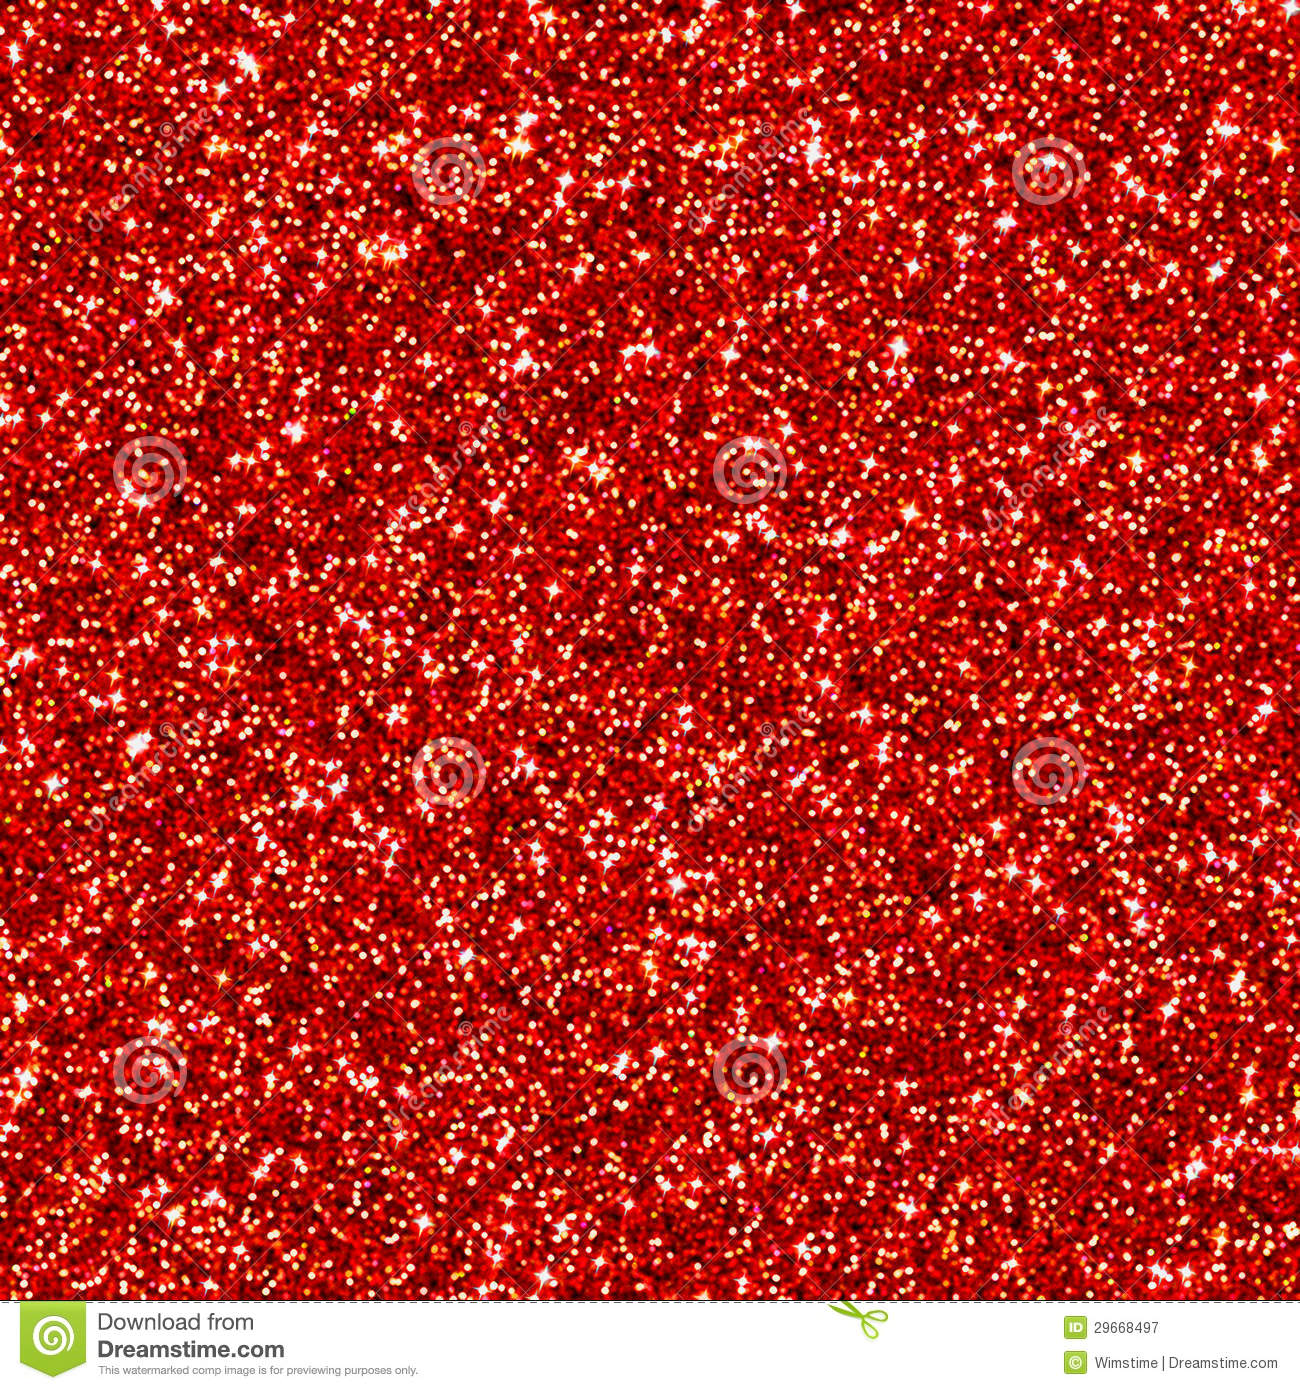 Red Glitter Clipart.